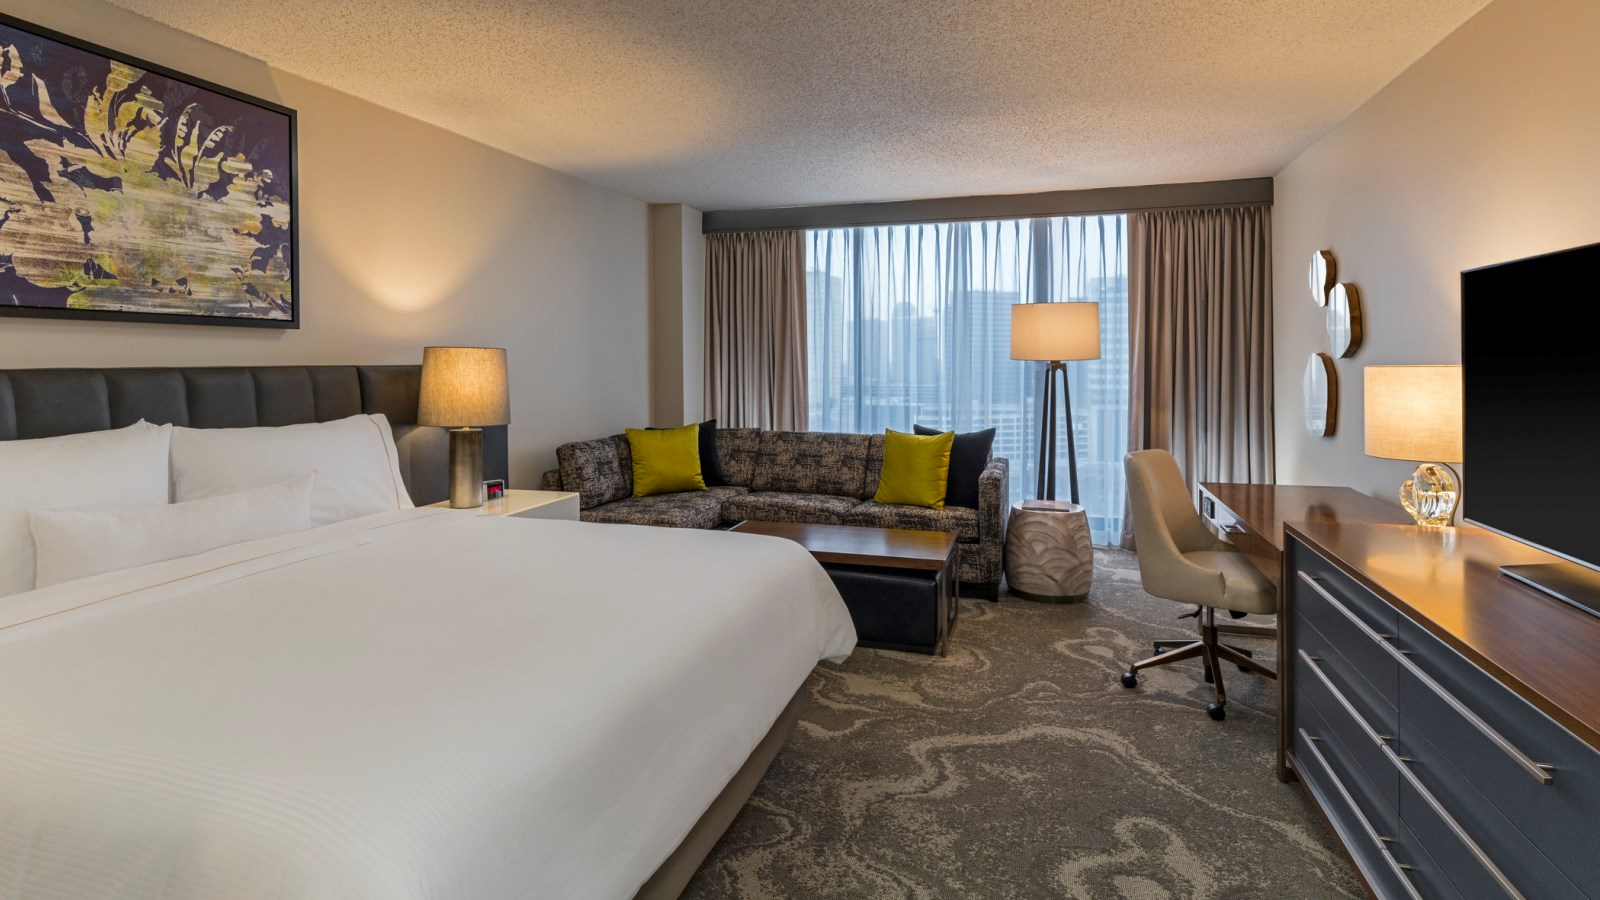 Deluxe King Room | The Westin Oaks Houston at the Galleria